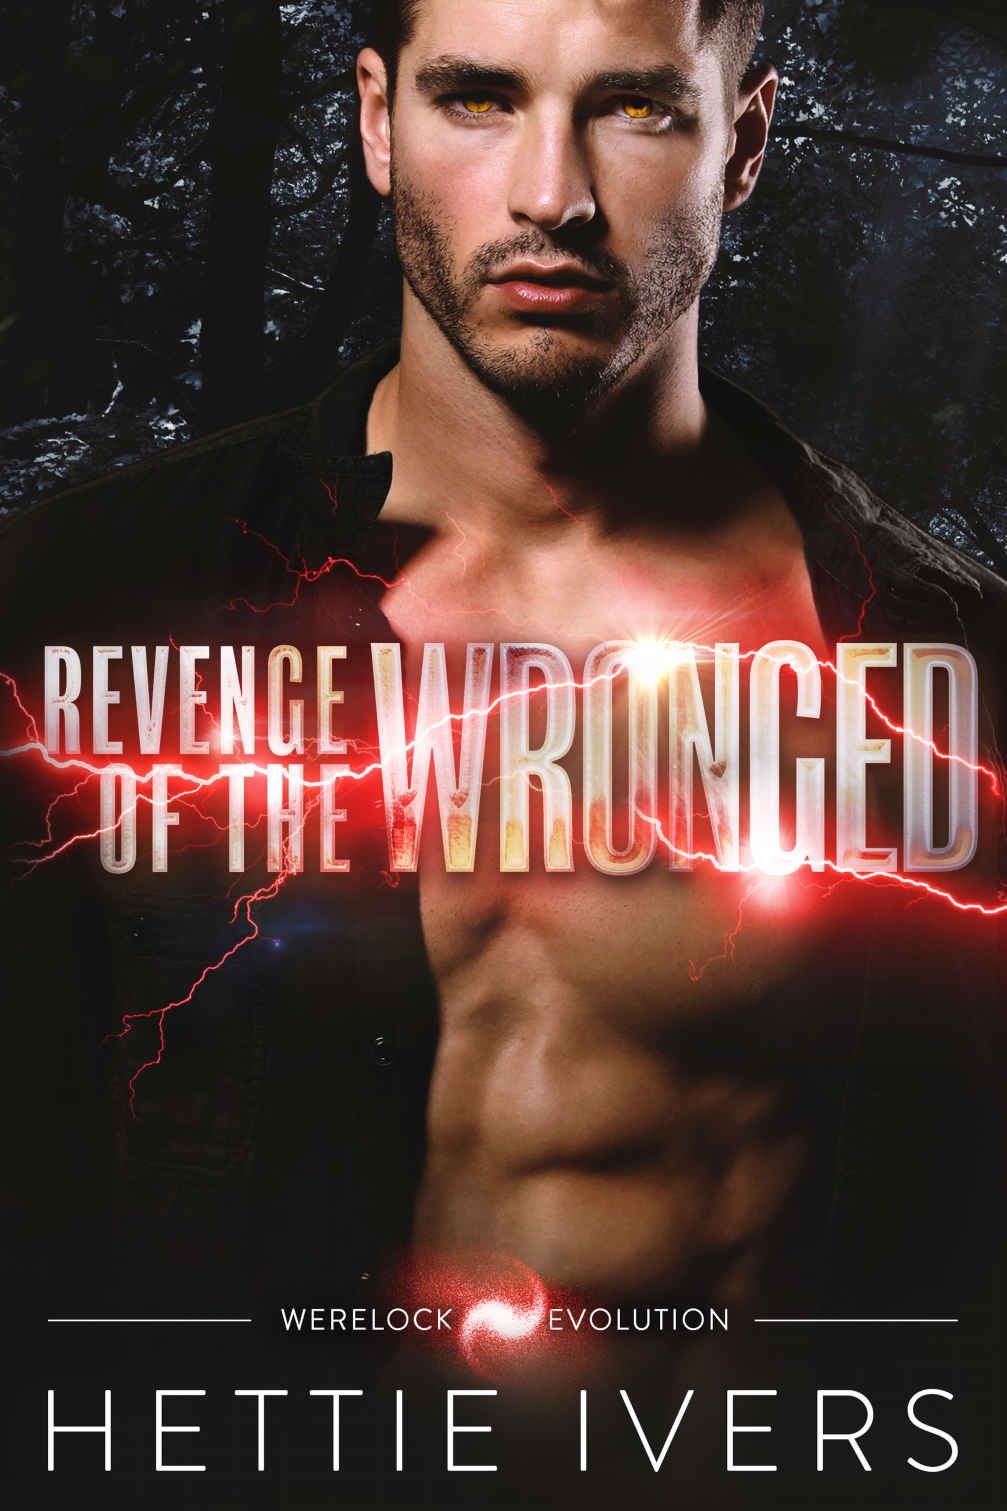 REVENGE OF THE WRONGED